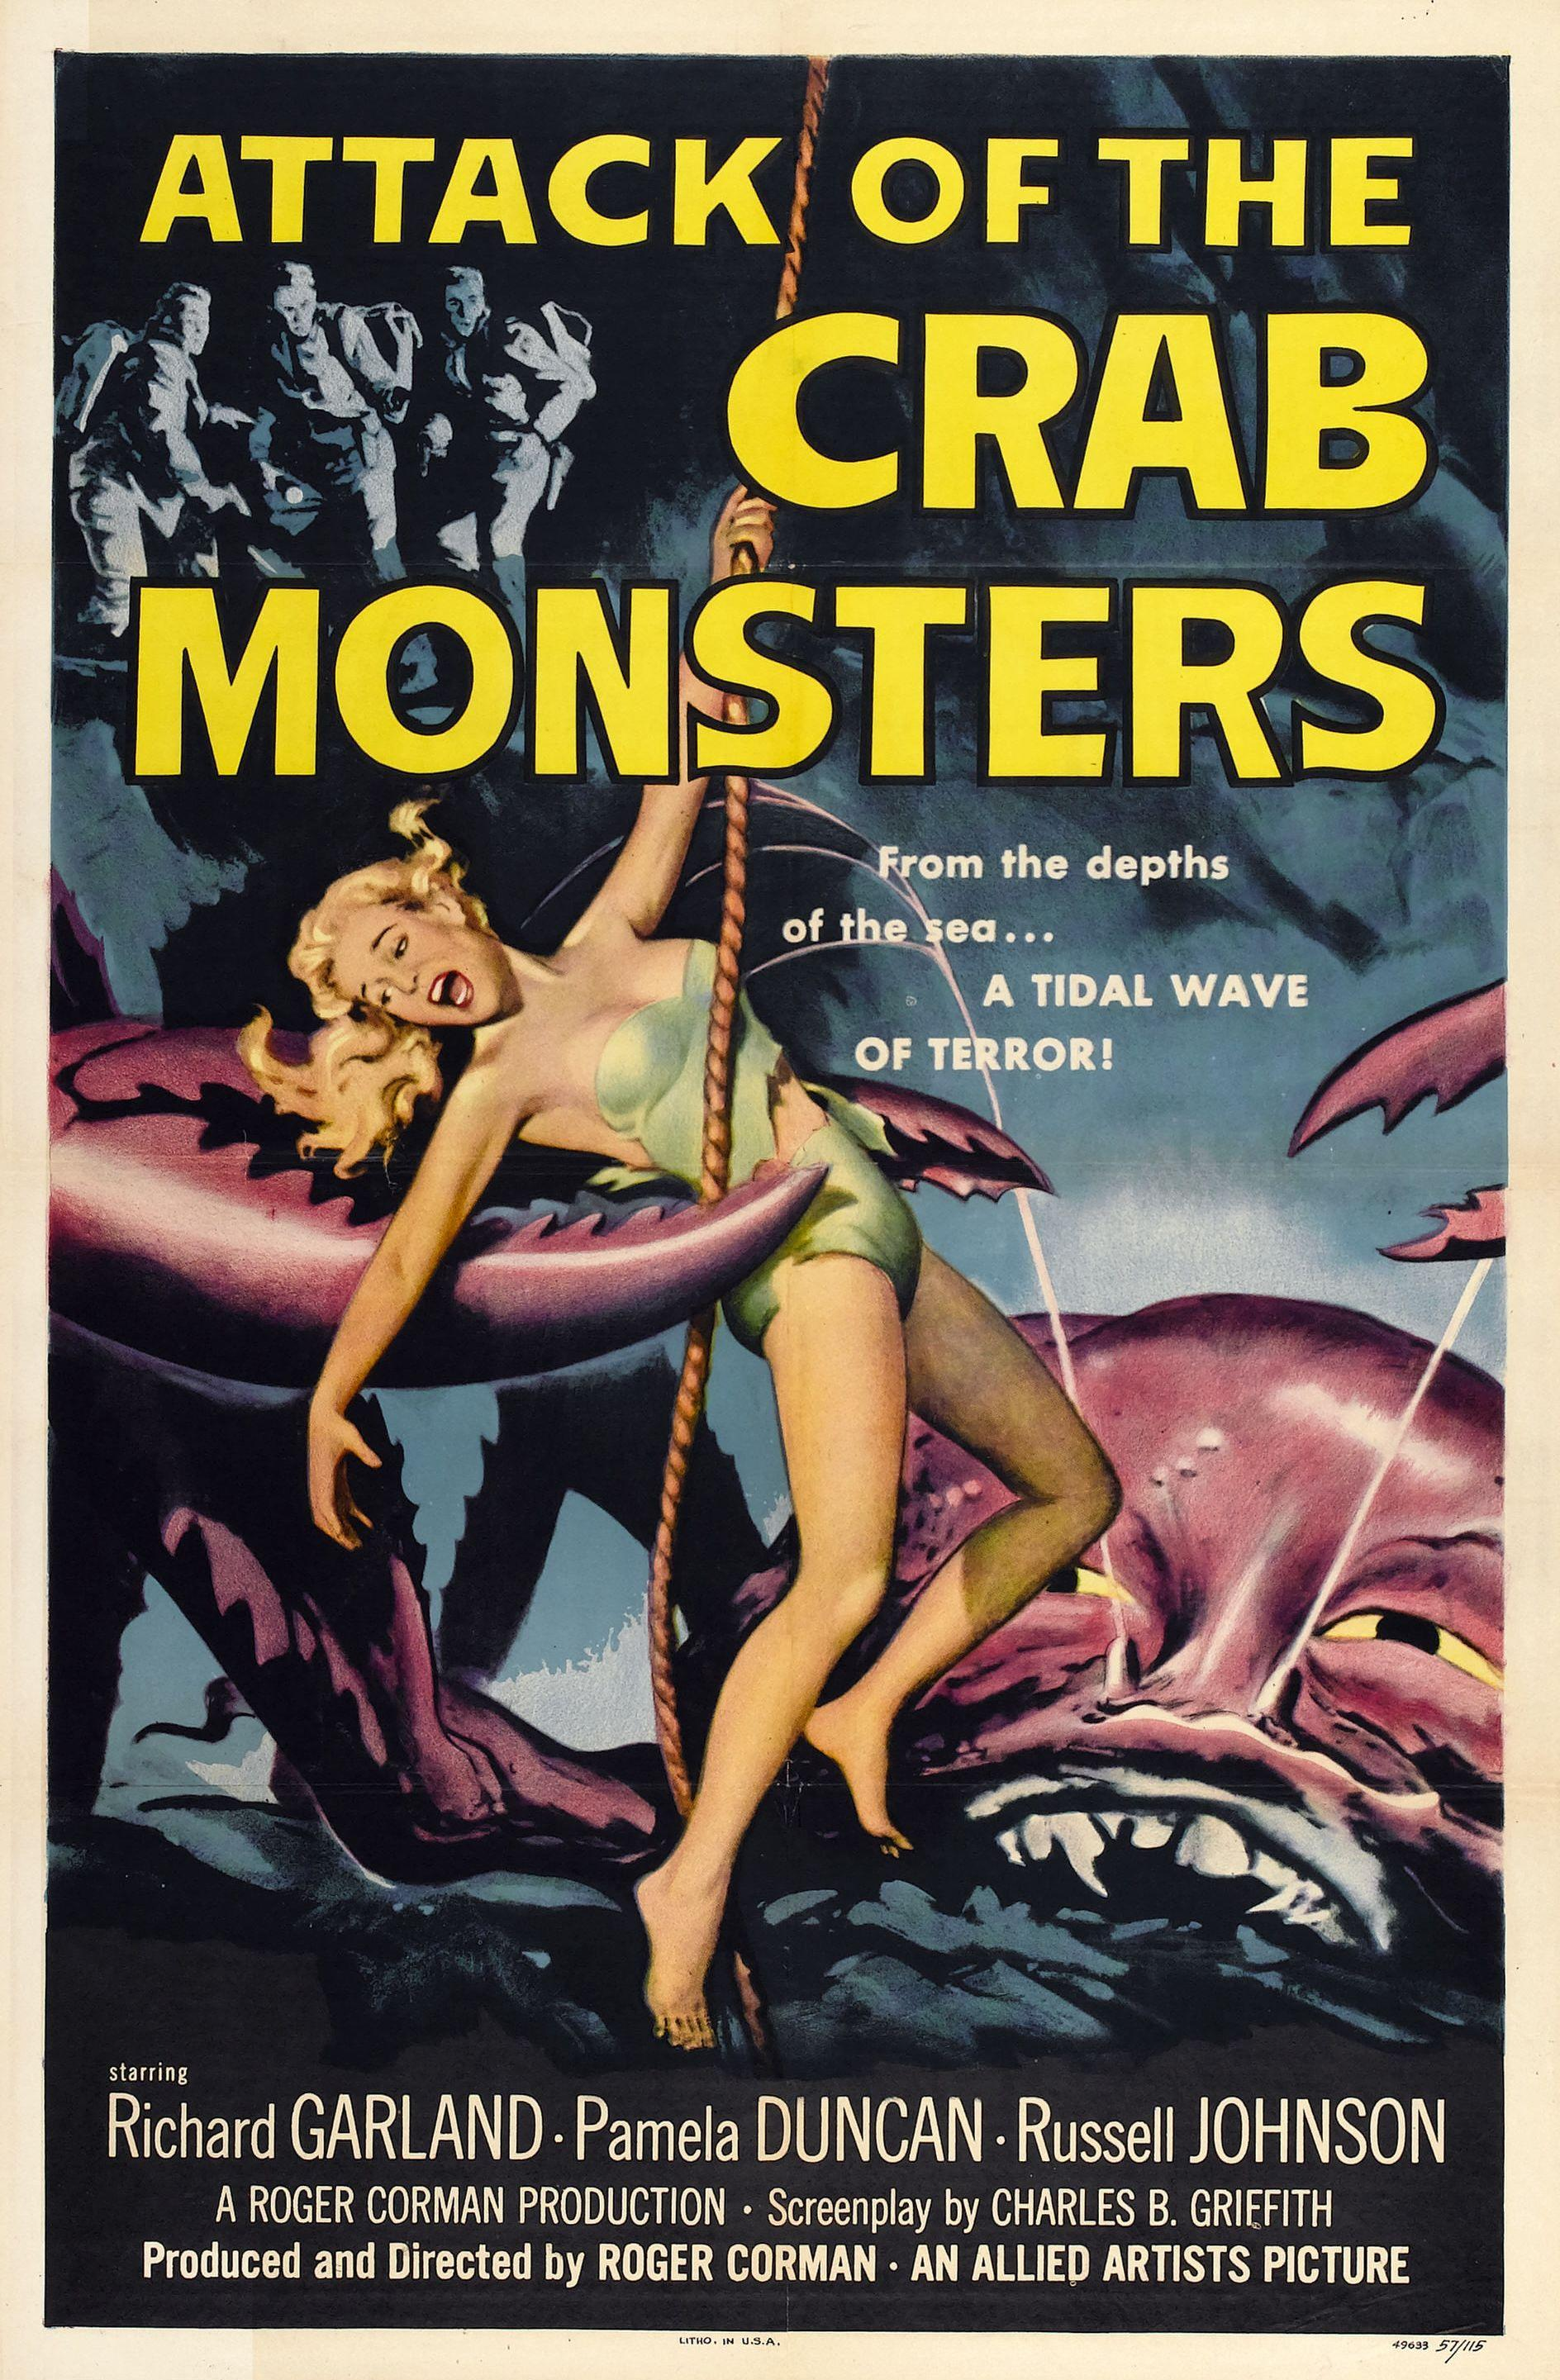 POSTER - ATTACK OF THE CRAB MONSTERS.jpg